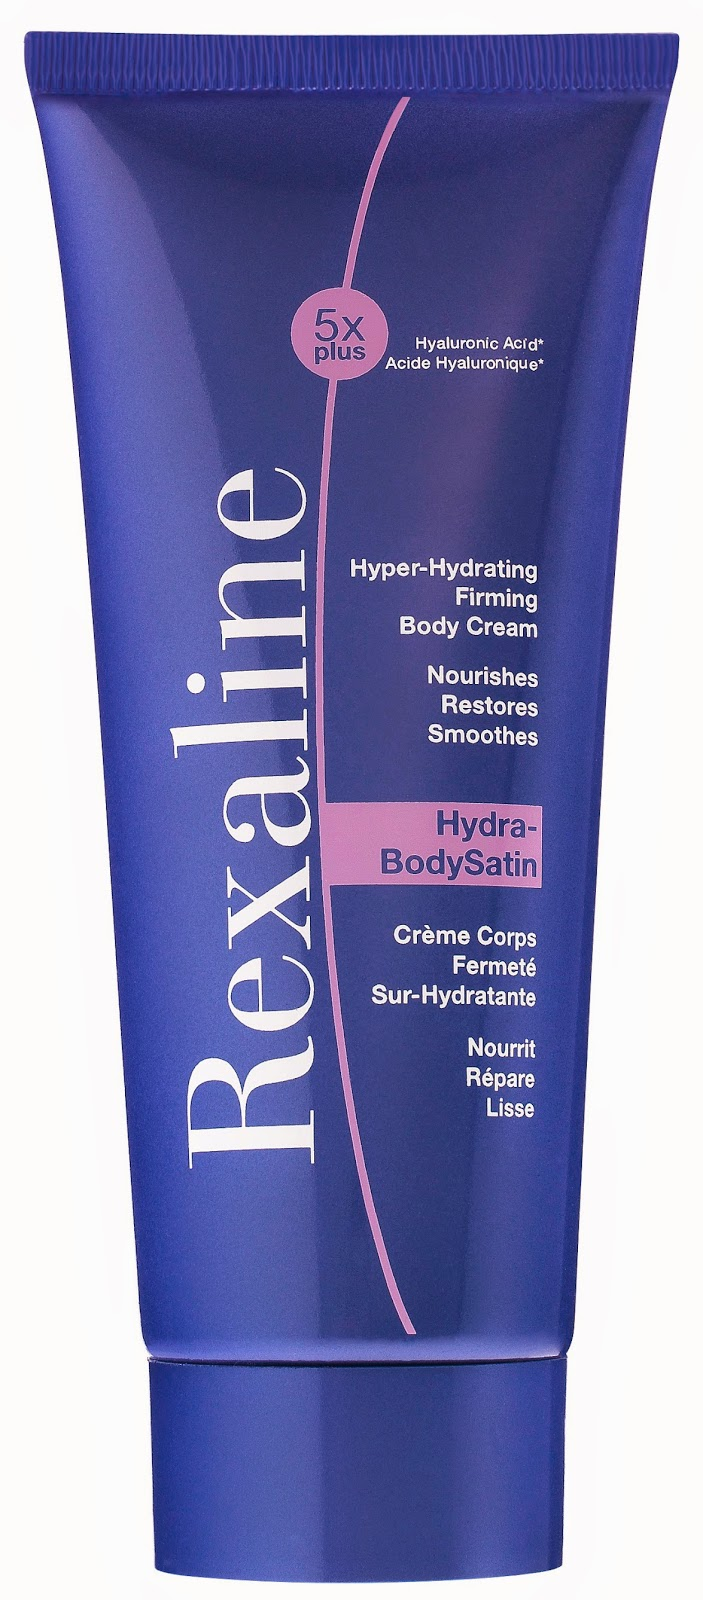 Preview: Hydra-BodySatin e Hydra Lip-Care - Rexaline